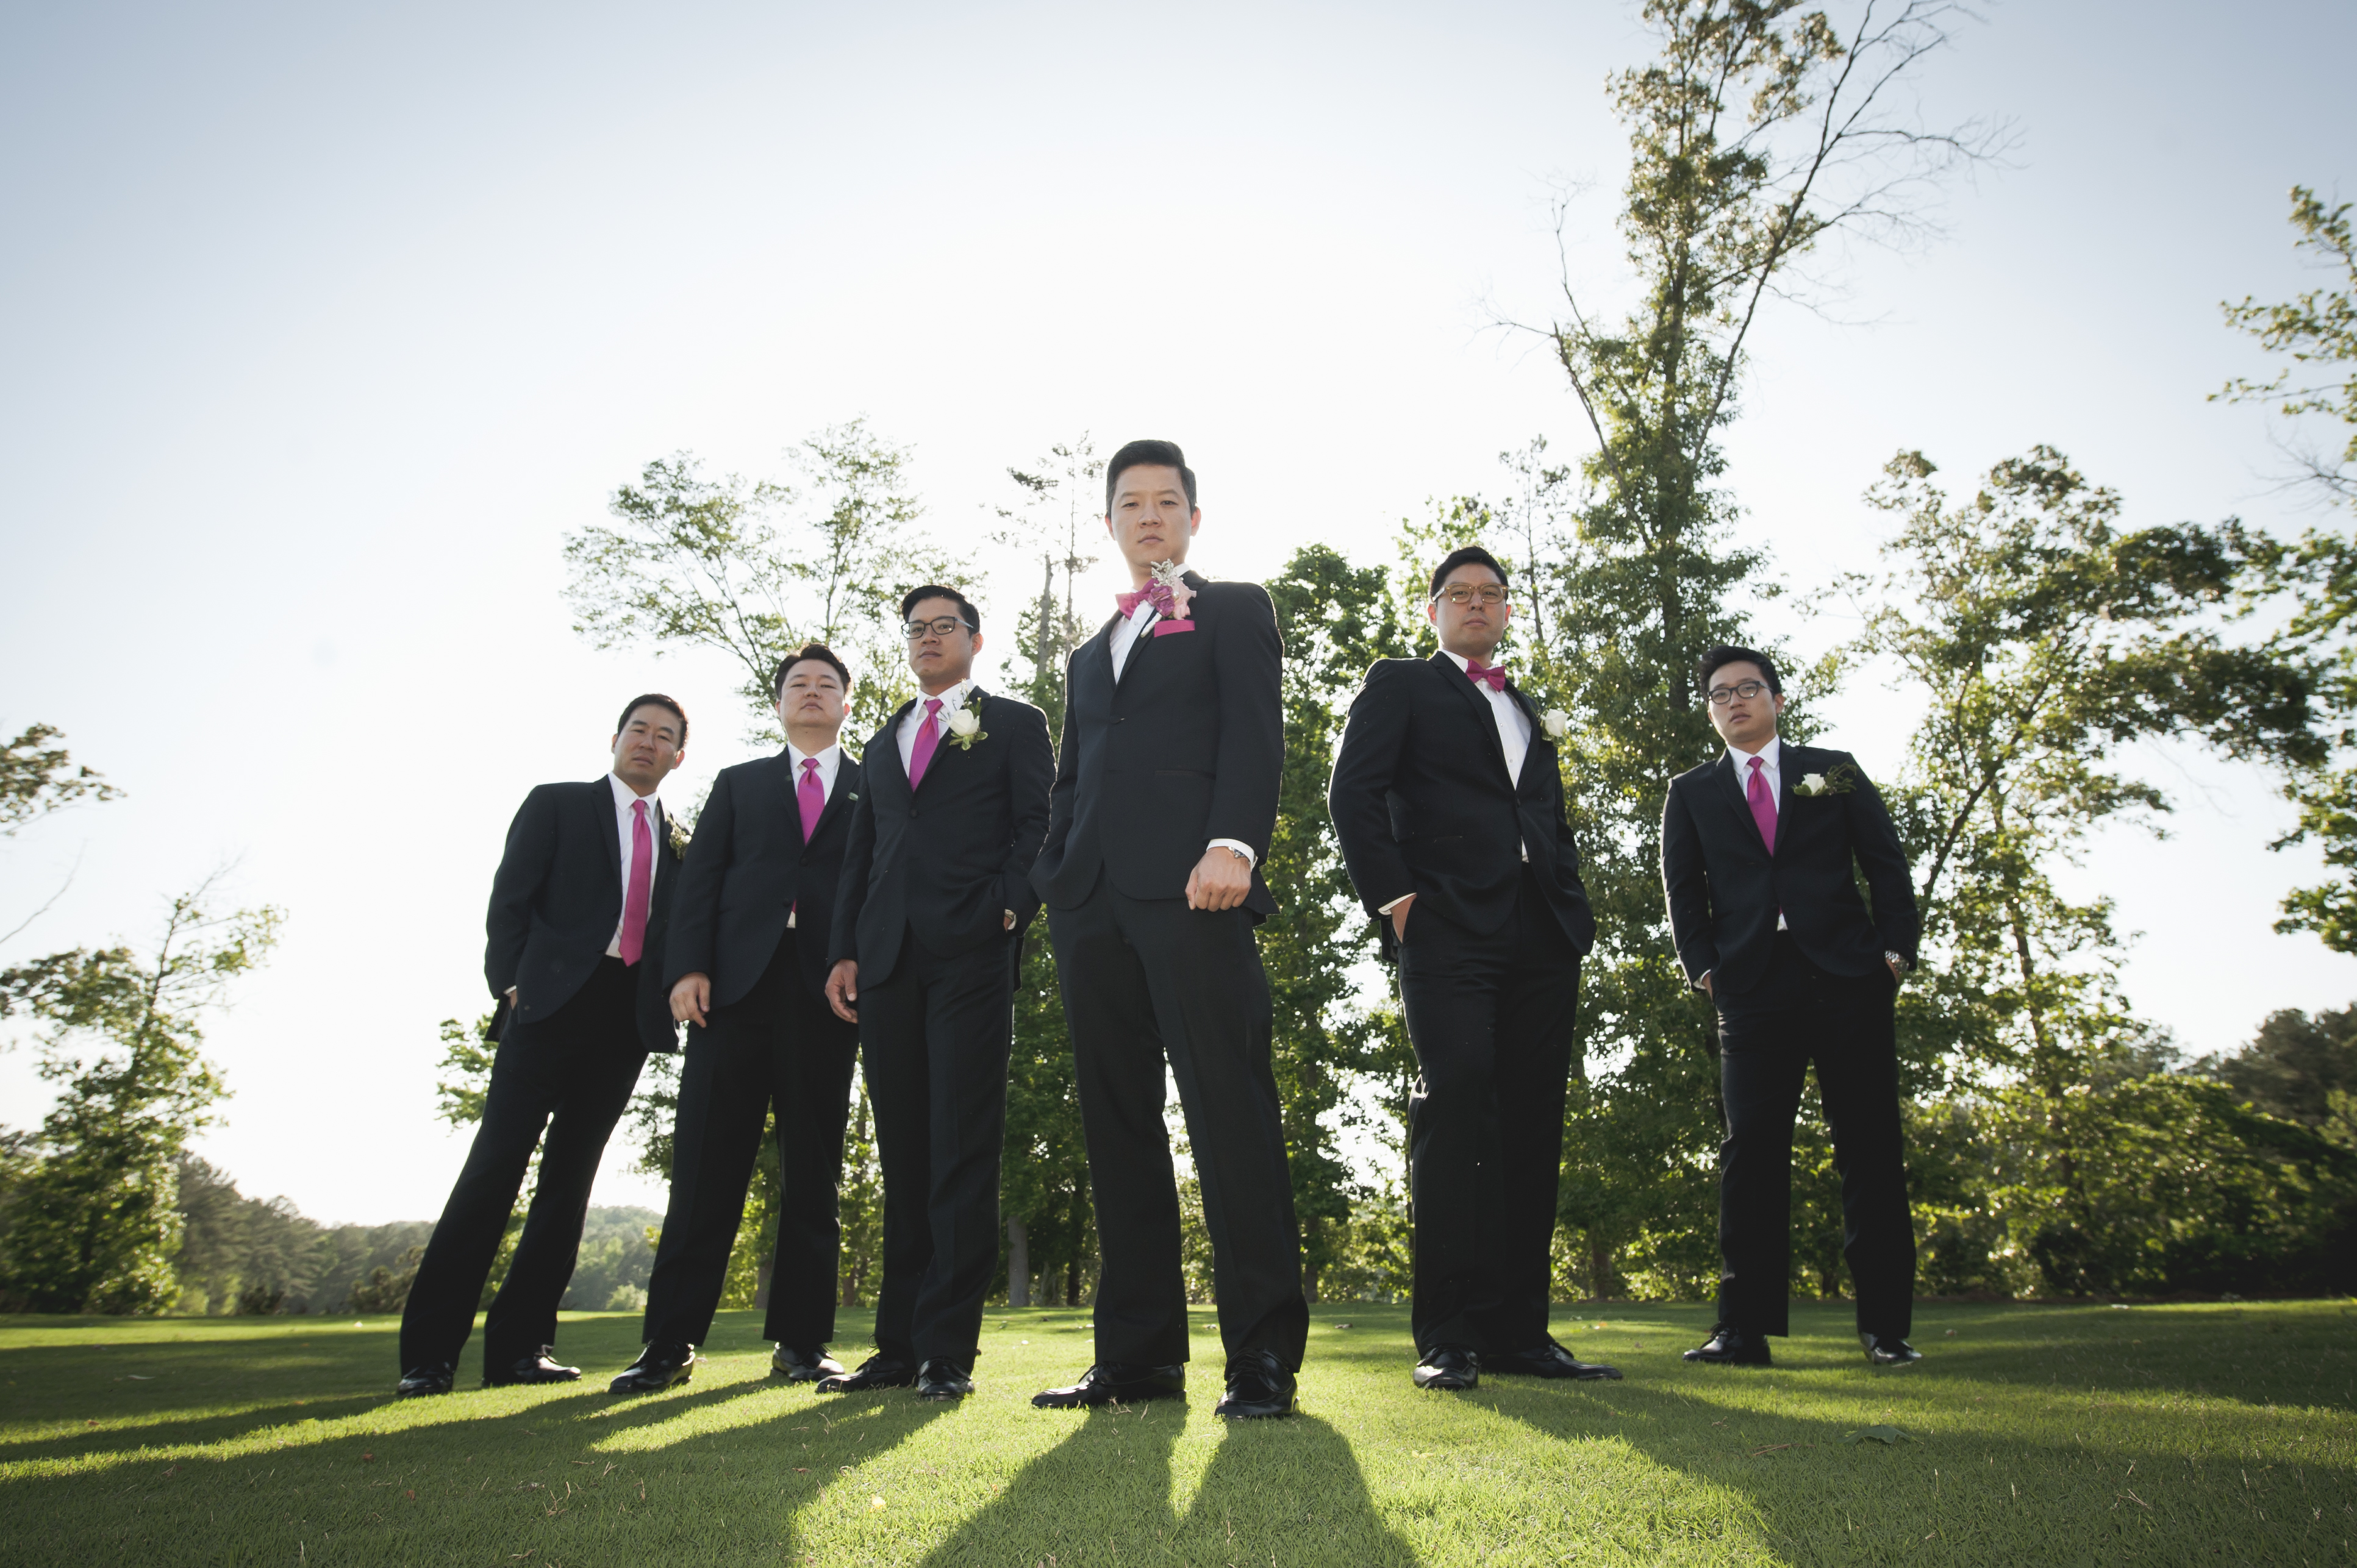 perfect wedding - groomsmen